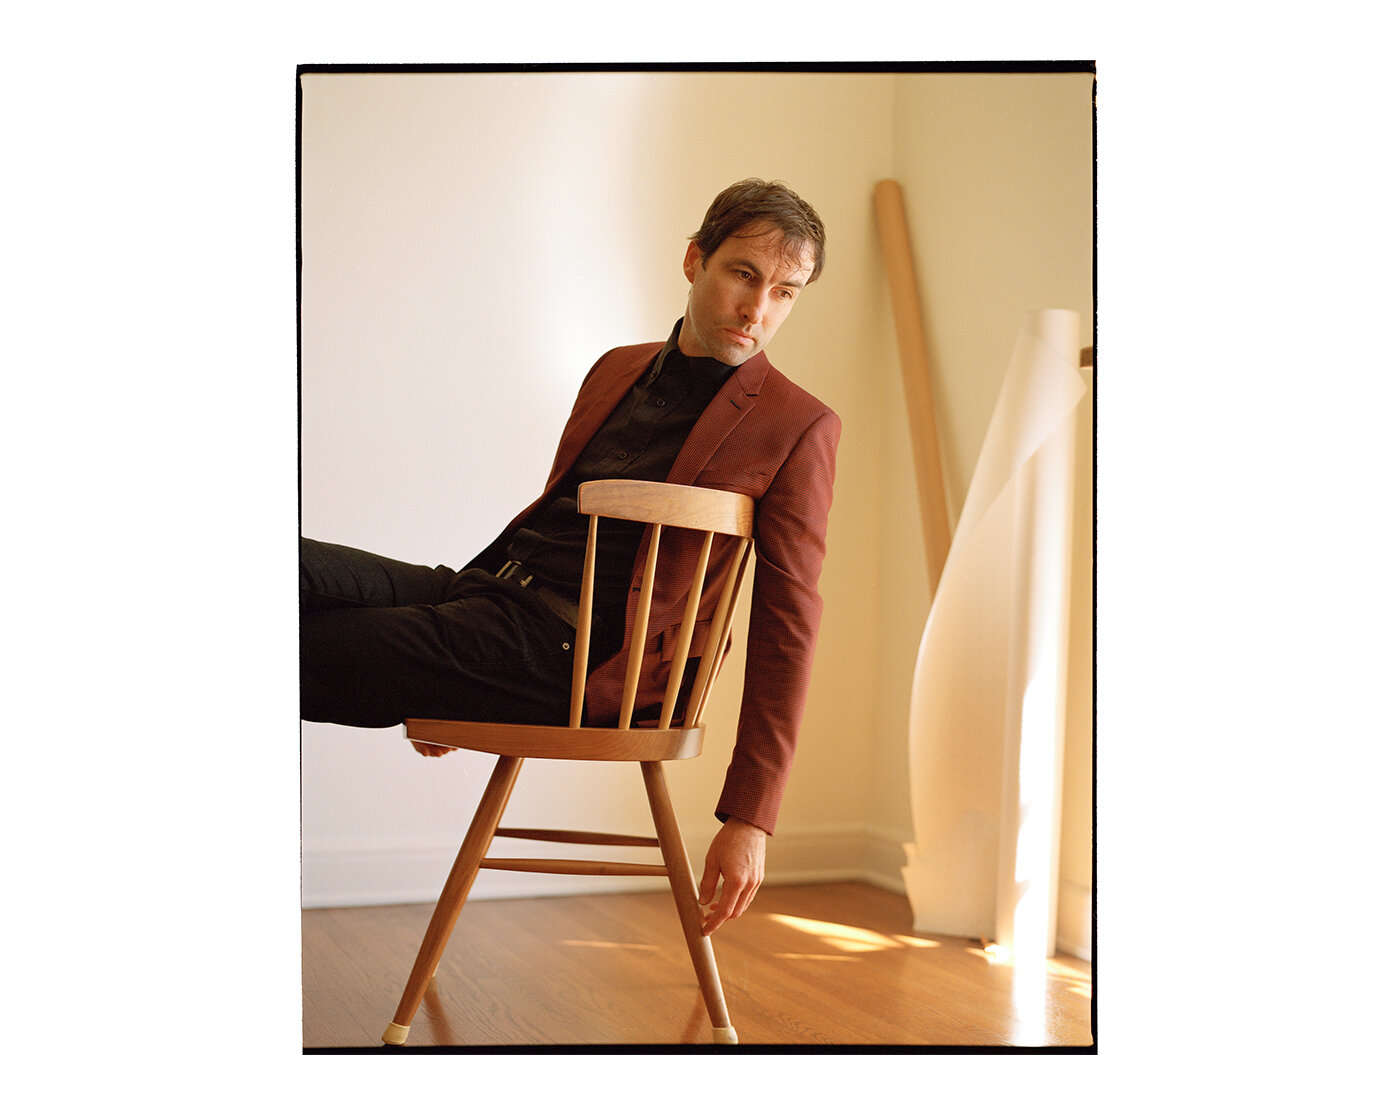 Andrew Bird, photographed by Brad Torchia in Los Angeles, CA